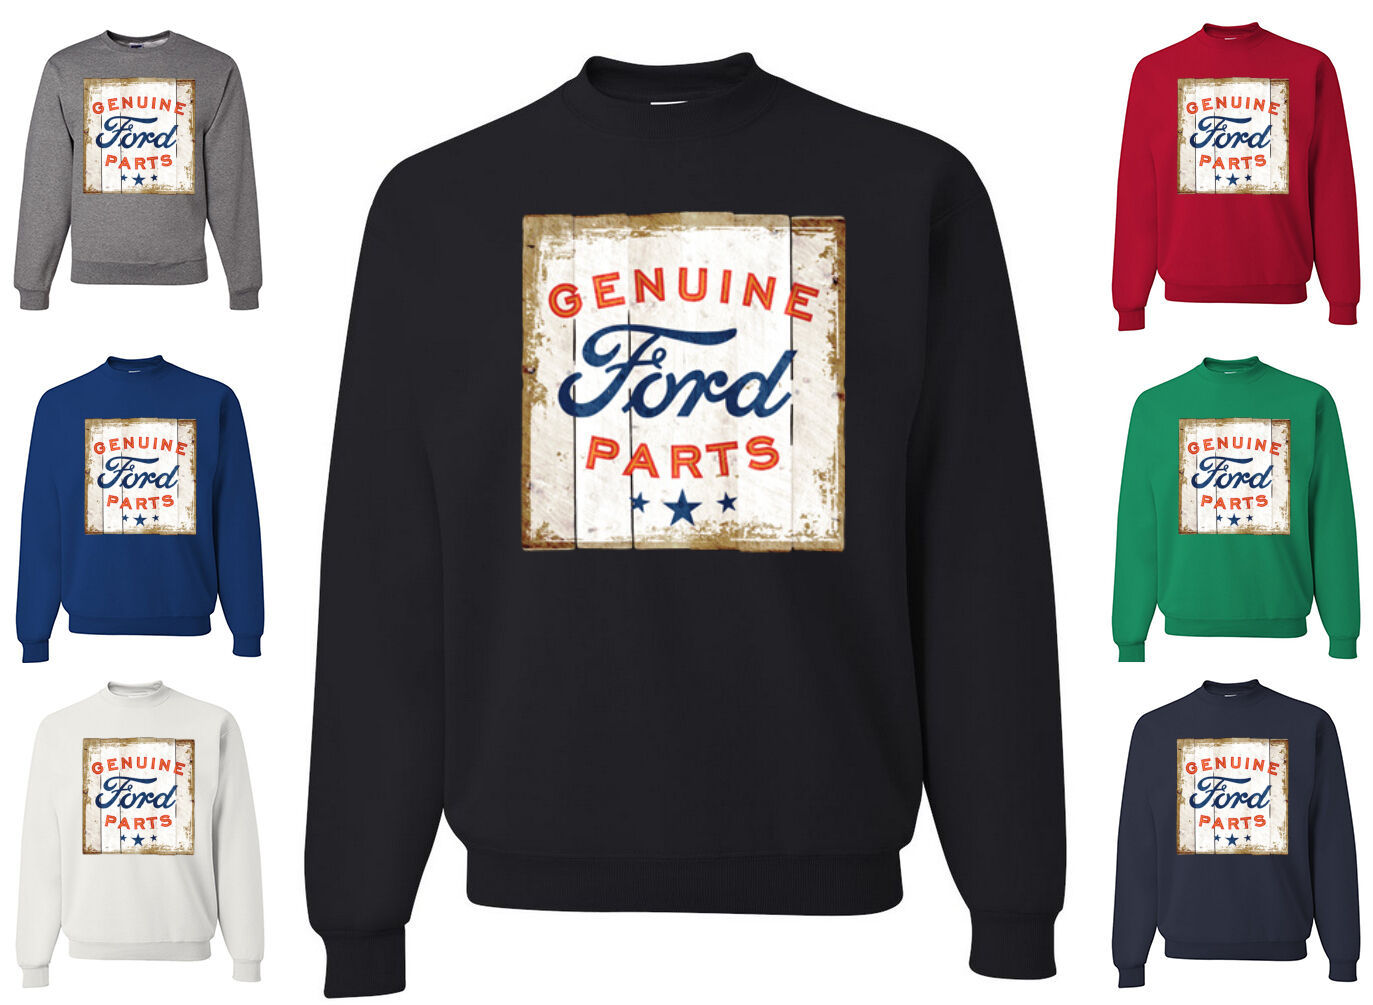 Primary image for Genuine Ford Parts Licensed Sweatshirt Retro American Classic Built Ford Tough